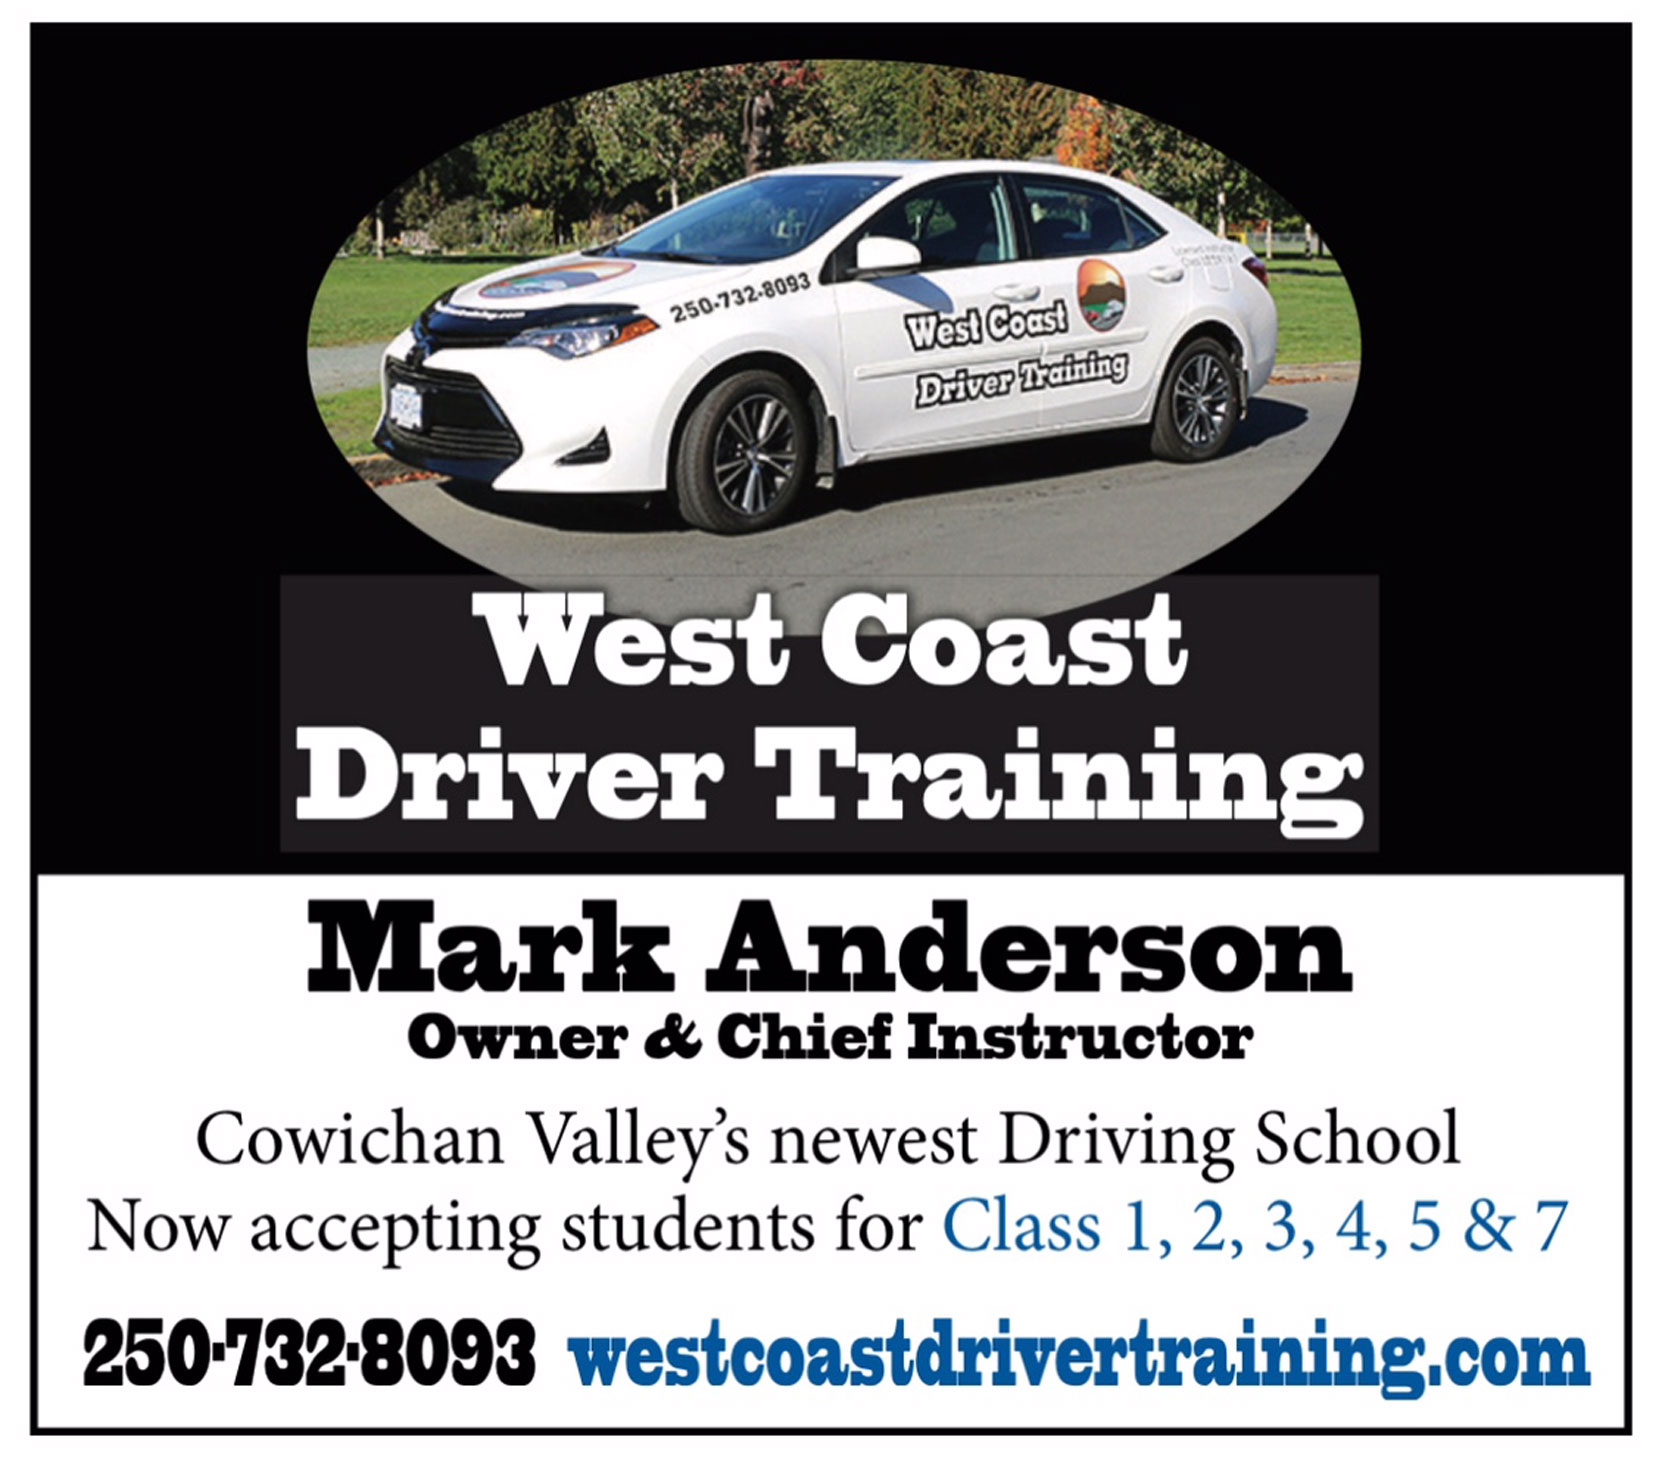 Our advertisement in the Cowichan Valley Citizen, 23 November 2018